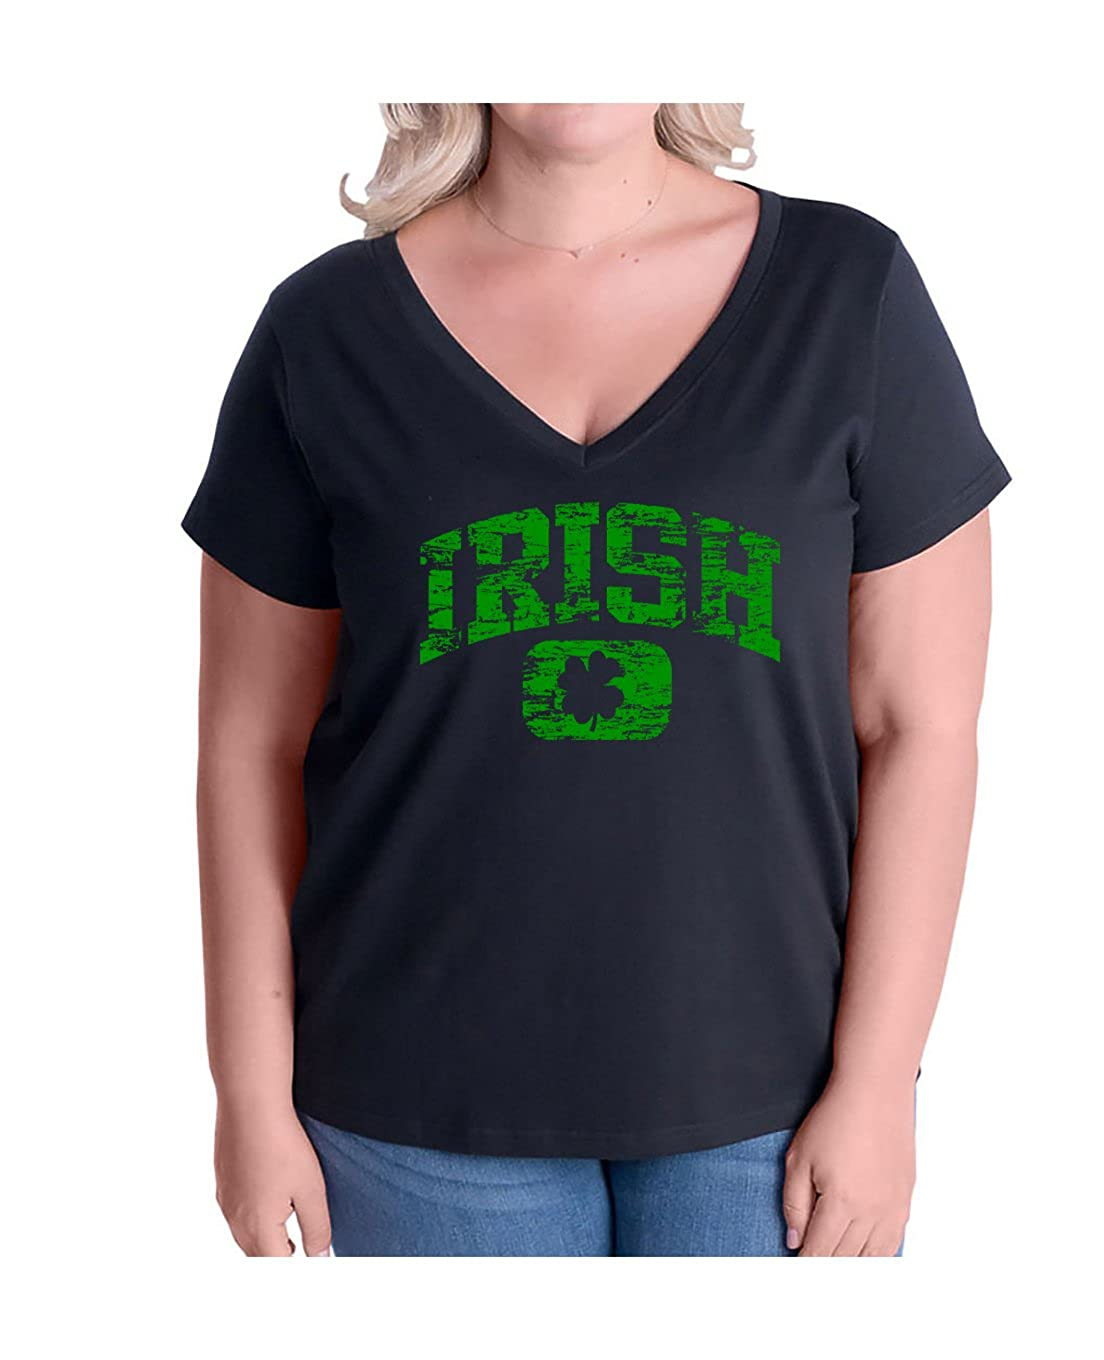 8838acc9b21b9 Amazon.com  Break Neck Tees Women s Plus Size Distressed Vintage Irish ST.  Patricks Day V-Neck T Shirt  Clothing